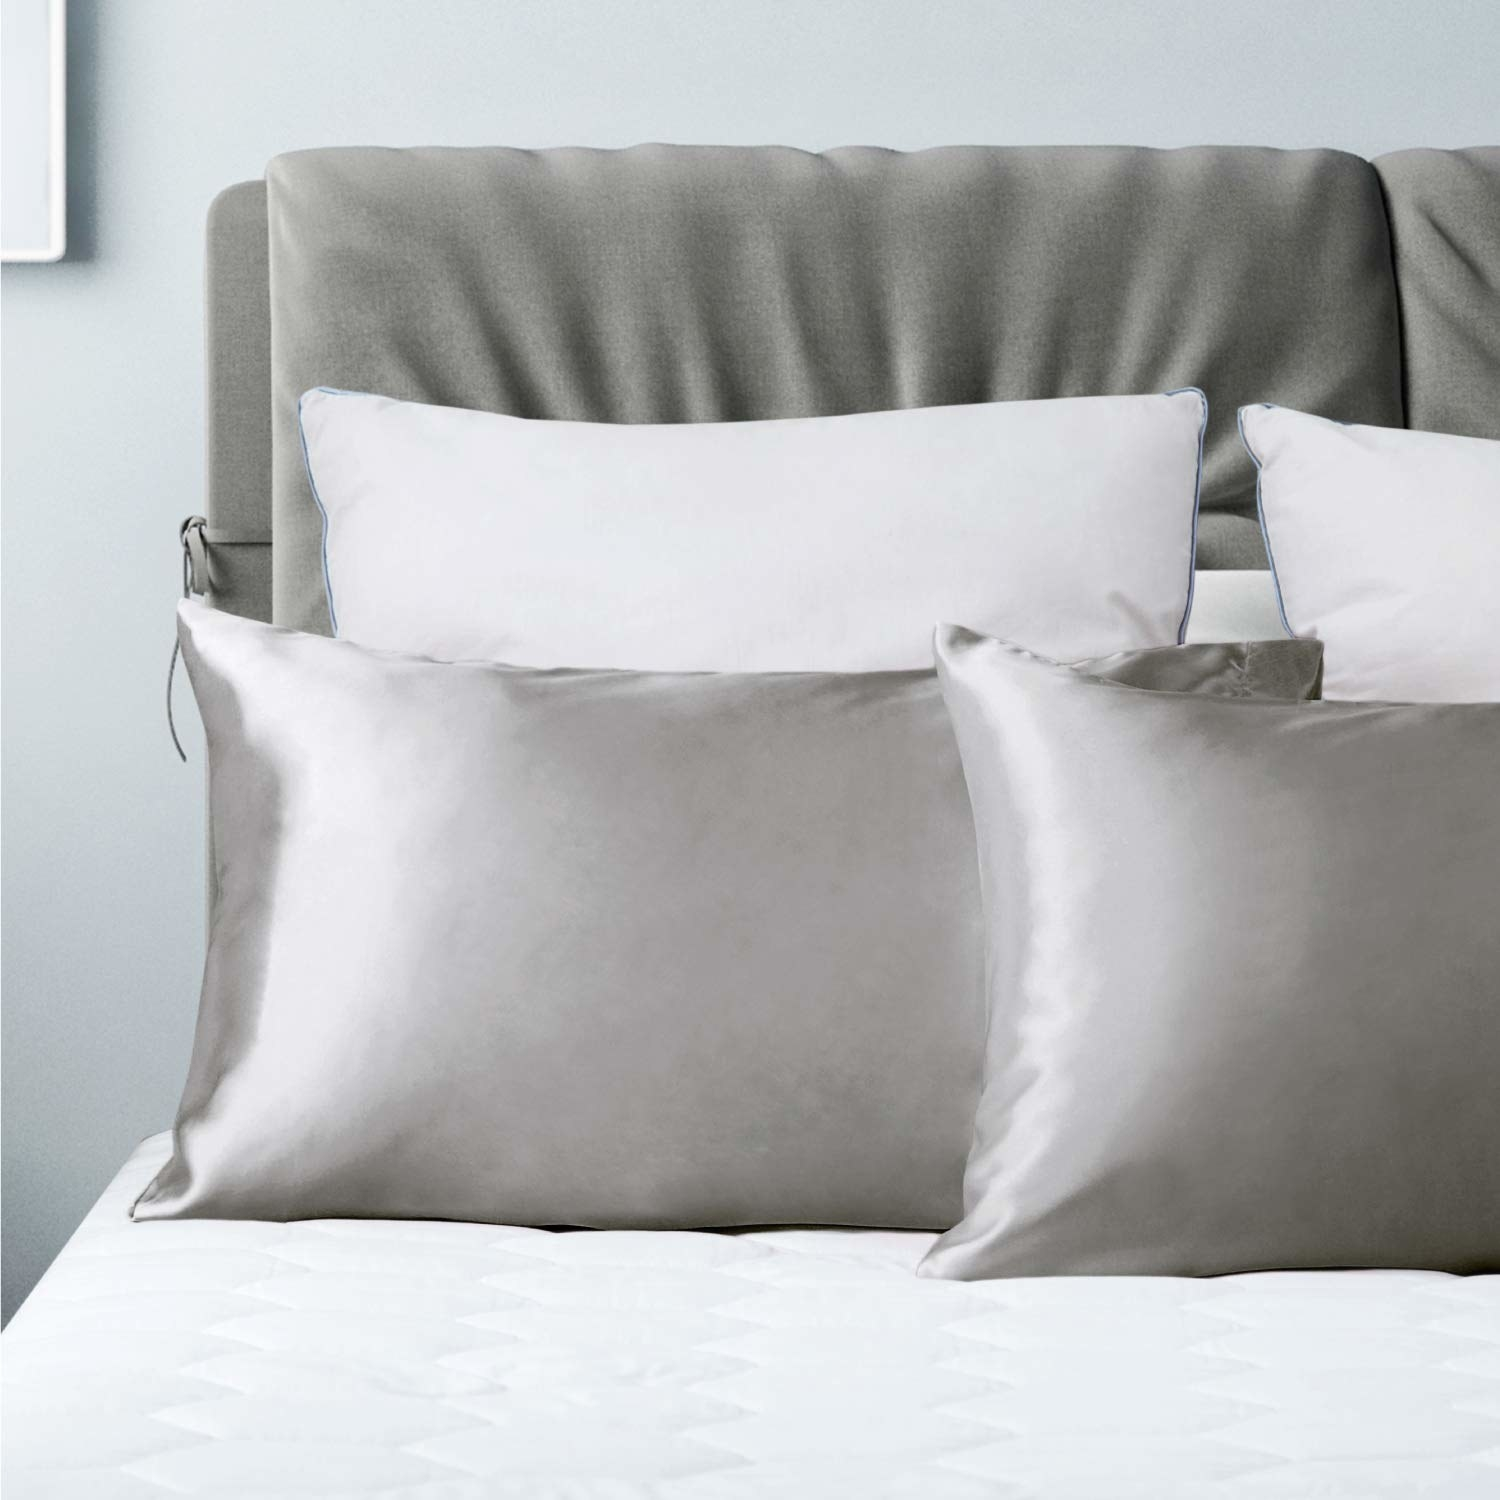 The shiny pillow cases in grey on a pillow